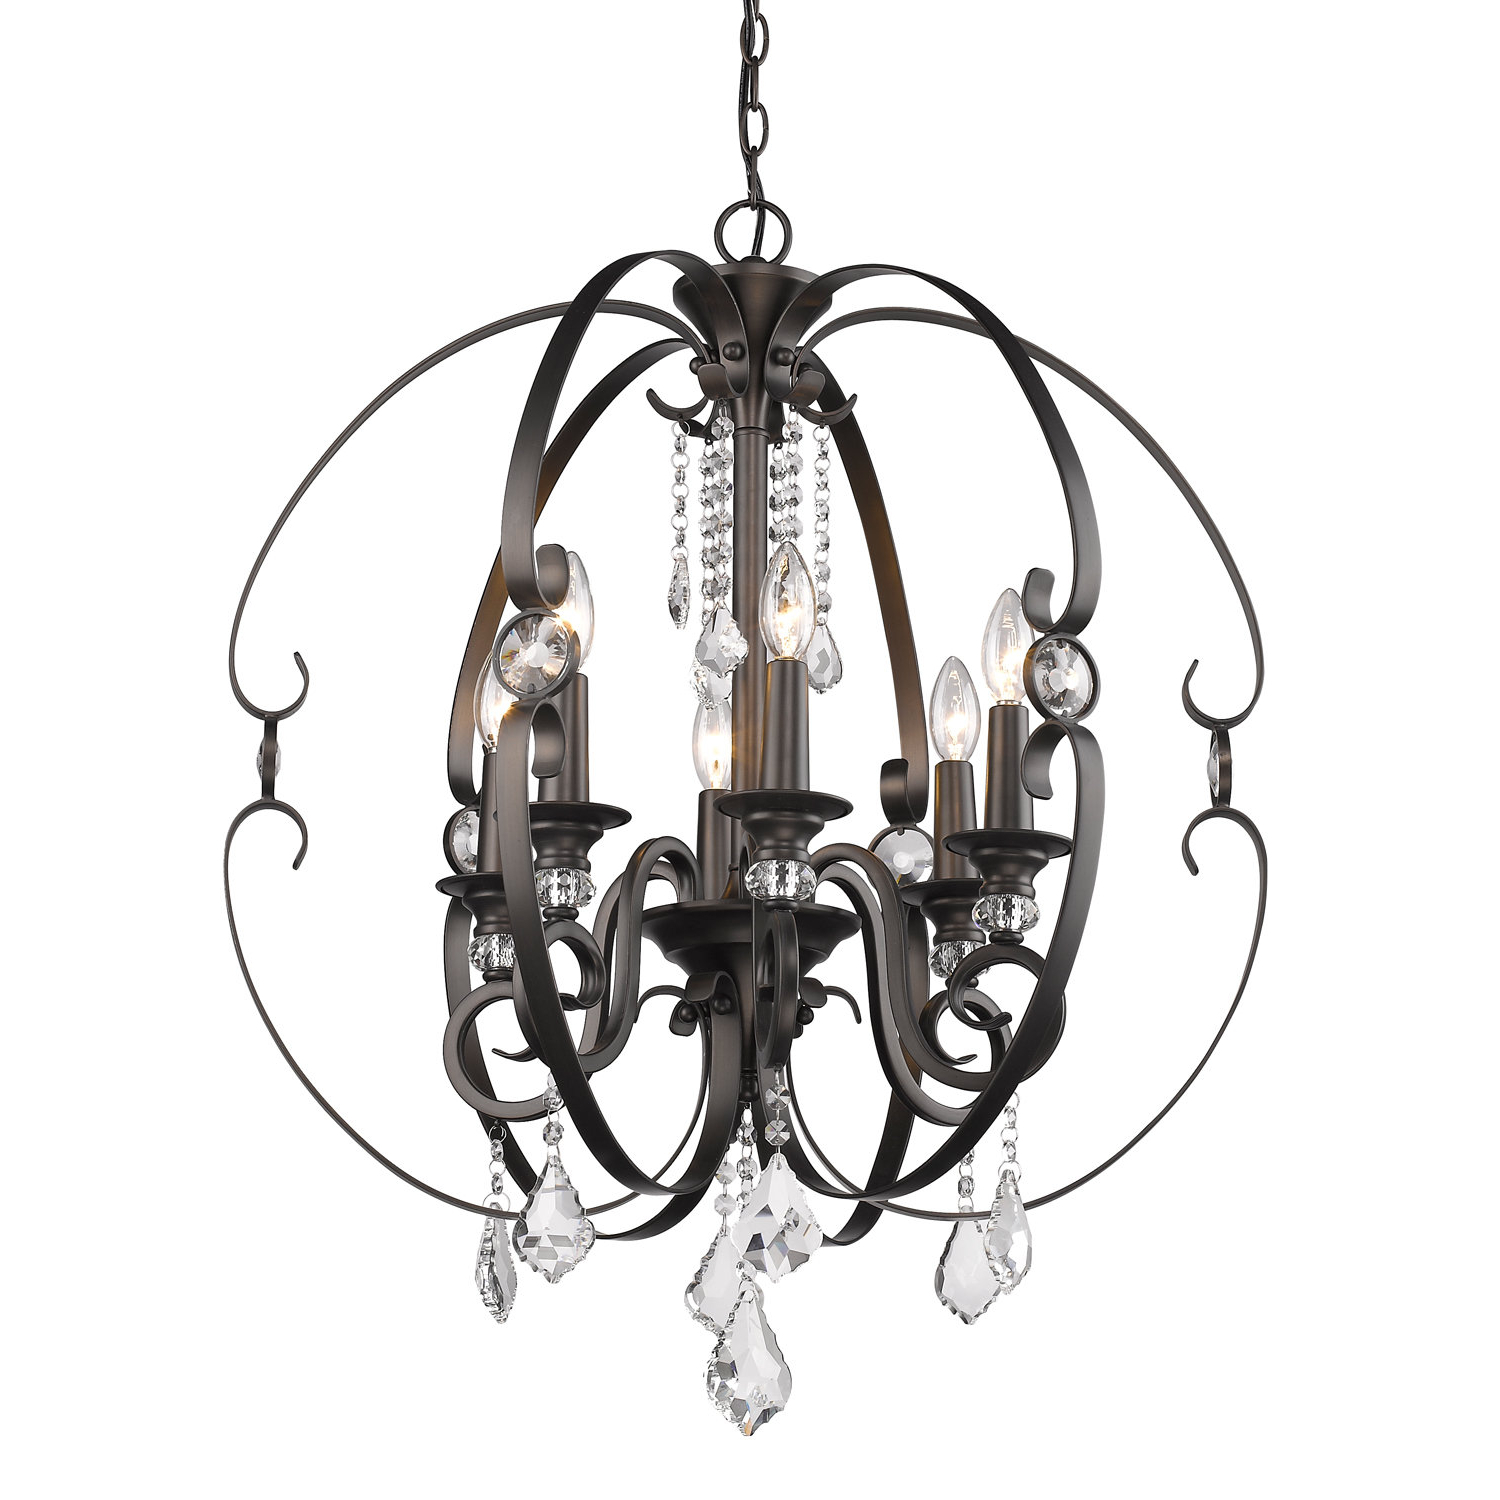 Alden 6 Light Globe Chandeliers Pertaining To Best And Newest Hardouin 6 Light Globe Chandelier (View 5 of 25)